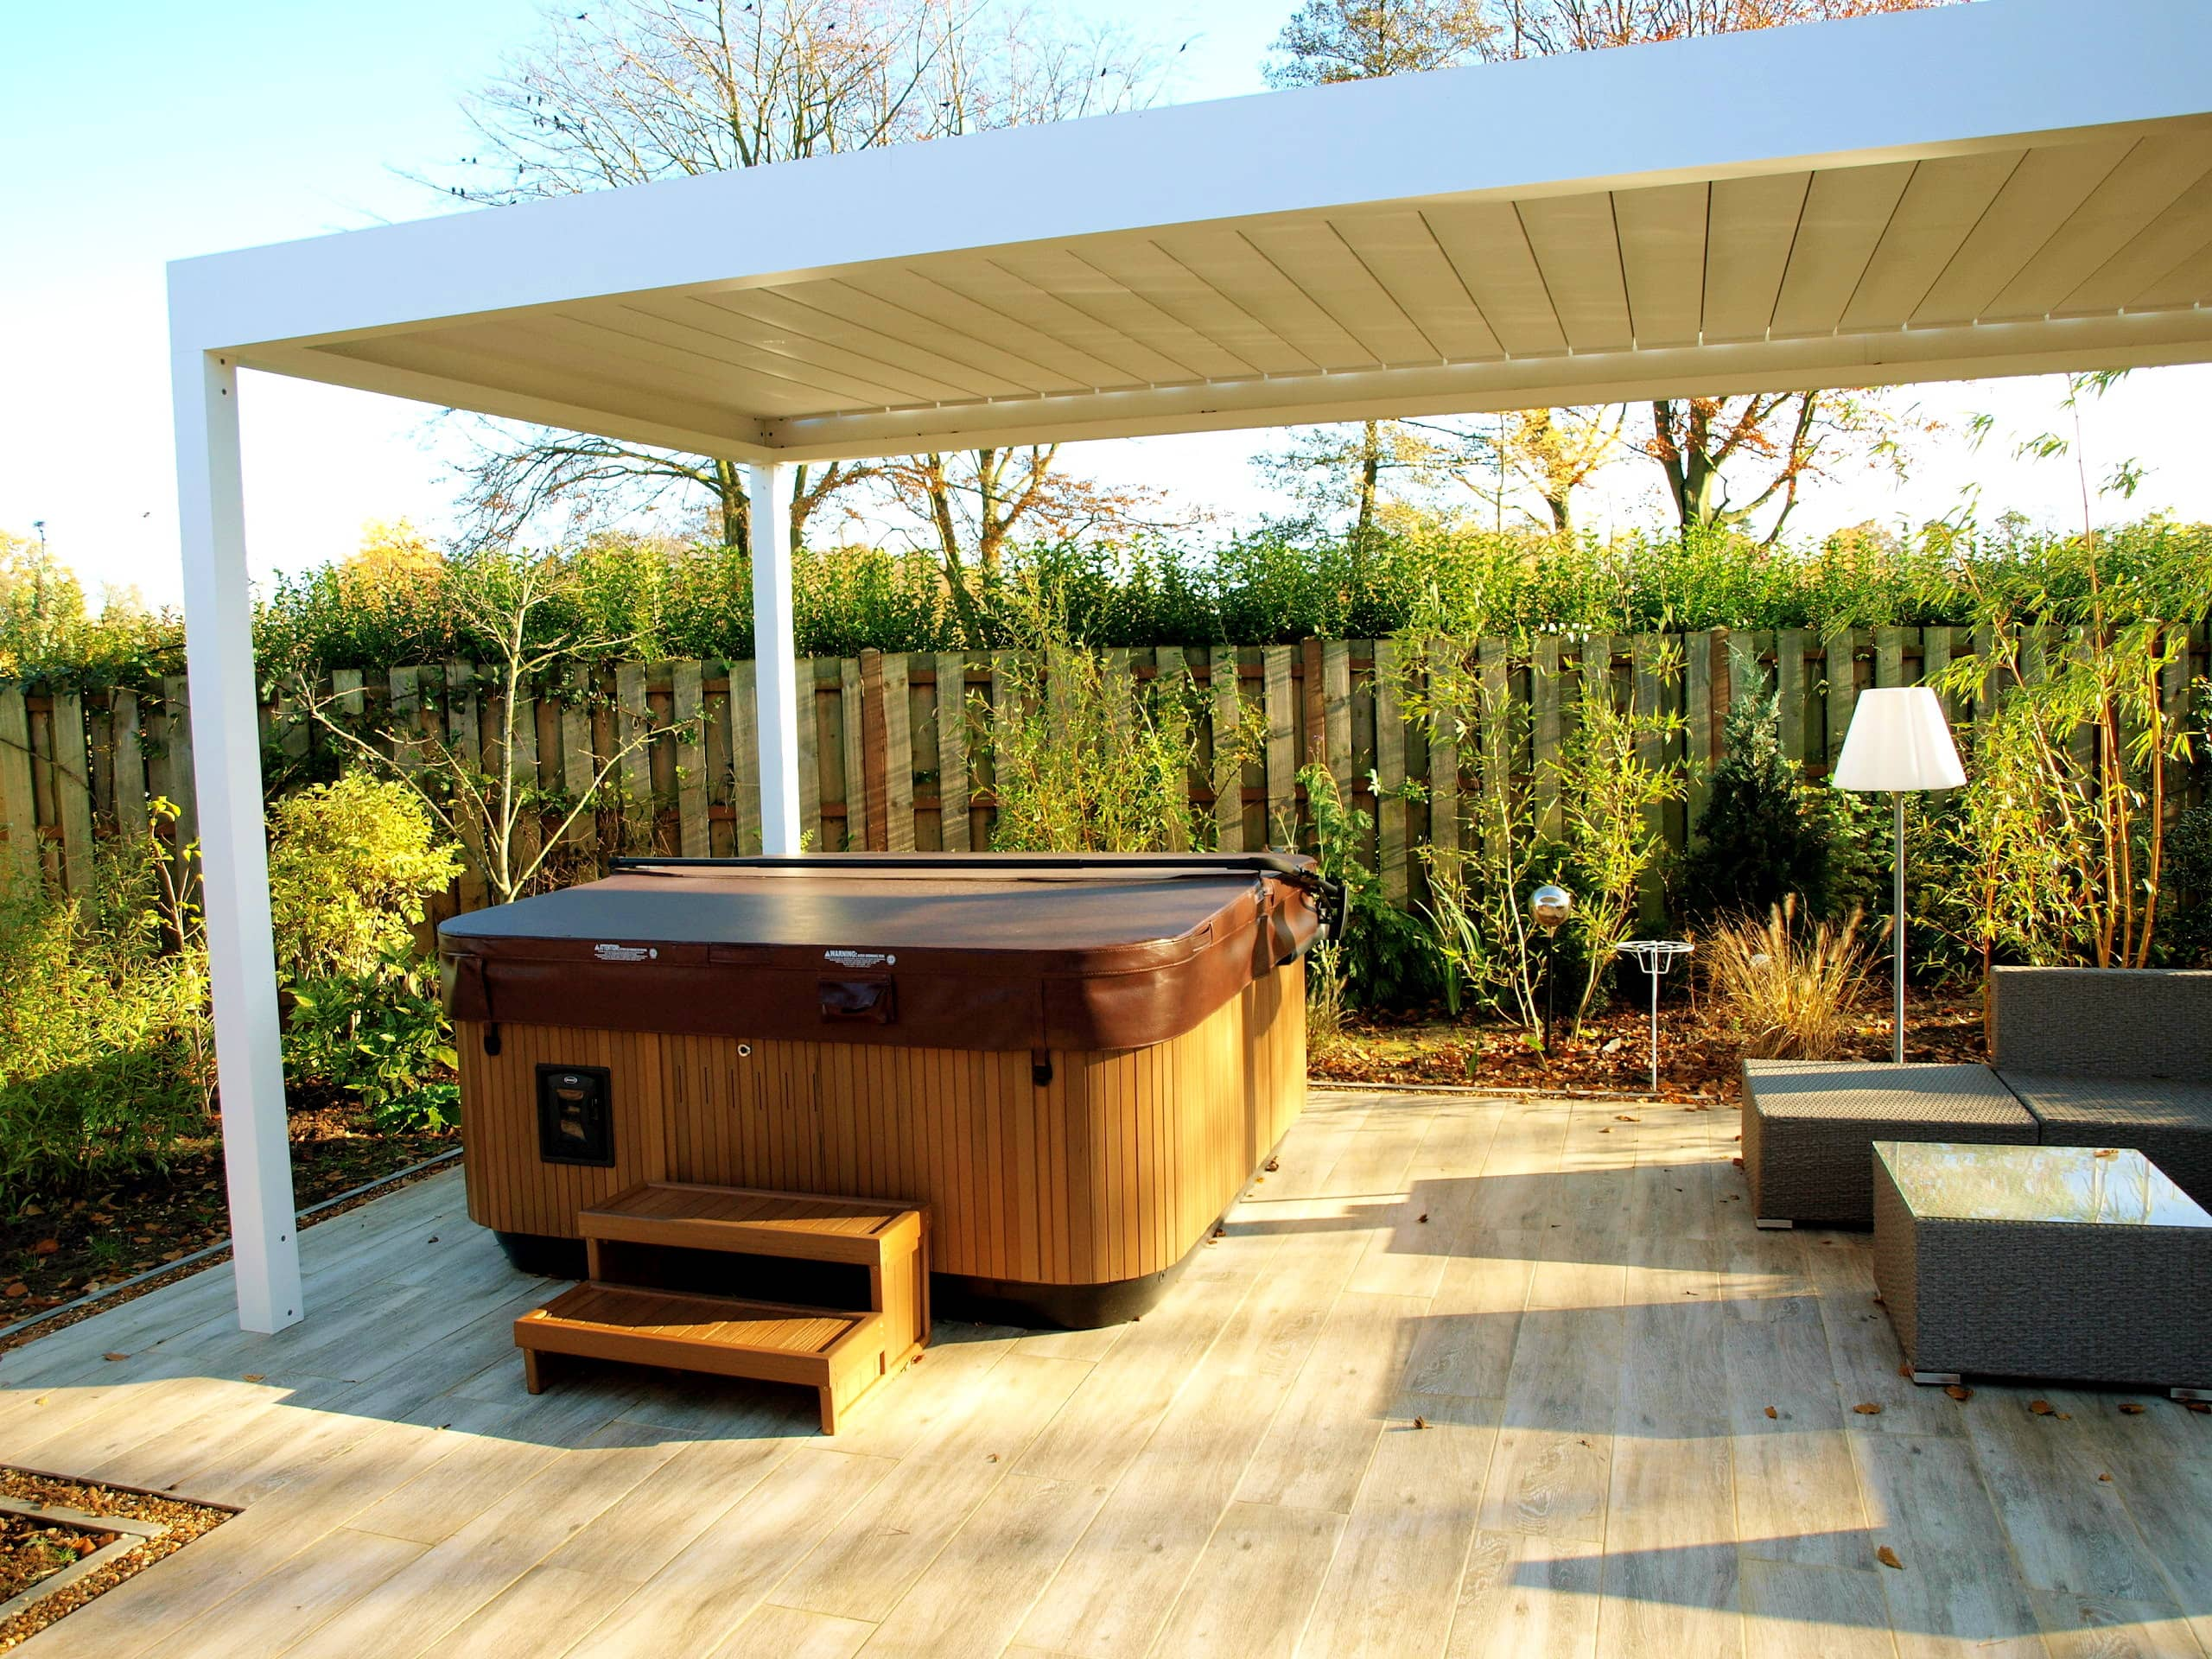 LOUVRED CANOPY OVER HOT TUB - KINGS LYNN | Retractable ...